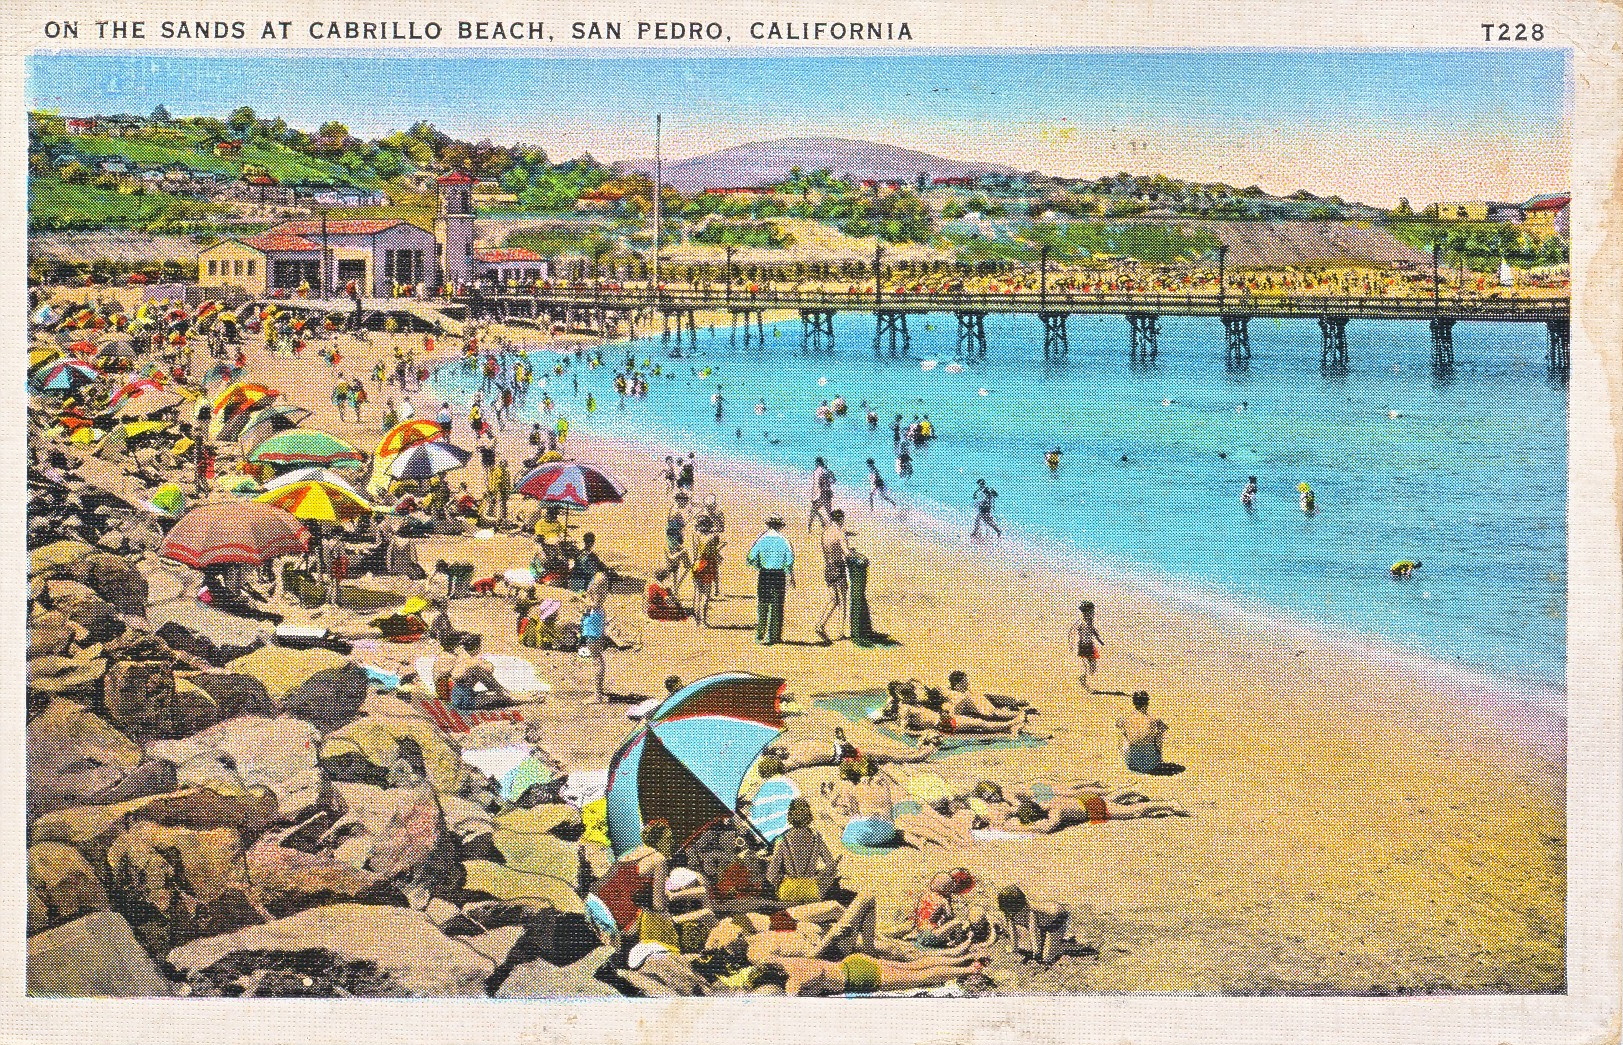 The Cabrillo Beach And Pier 1942